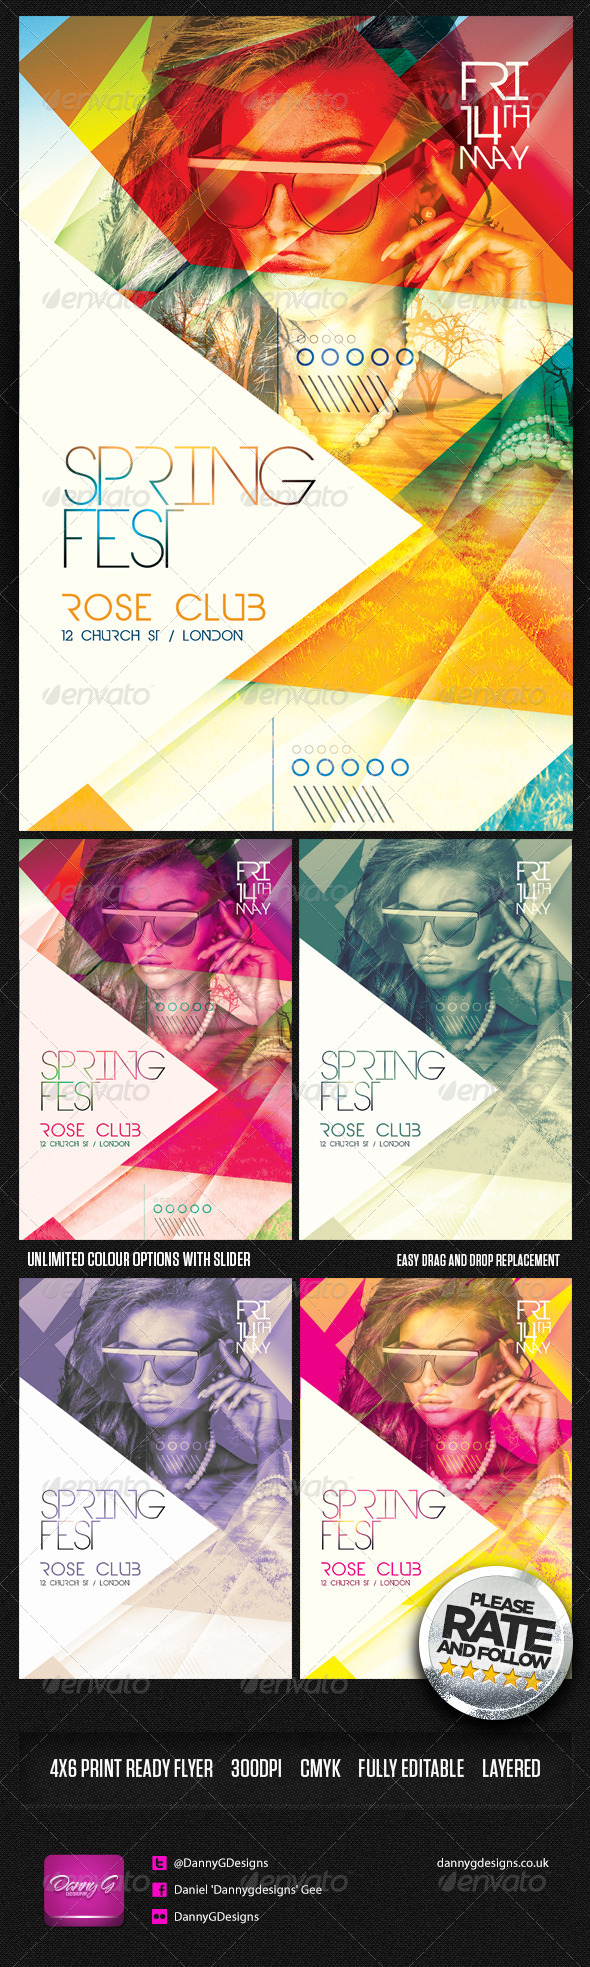 Spring Fest Flyer Template PSD - Clubs & Parties Events